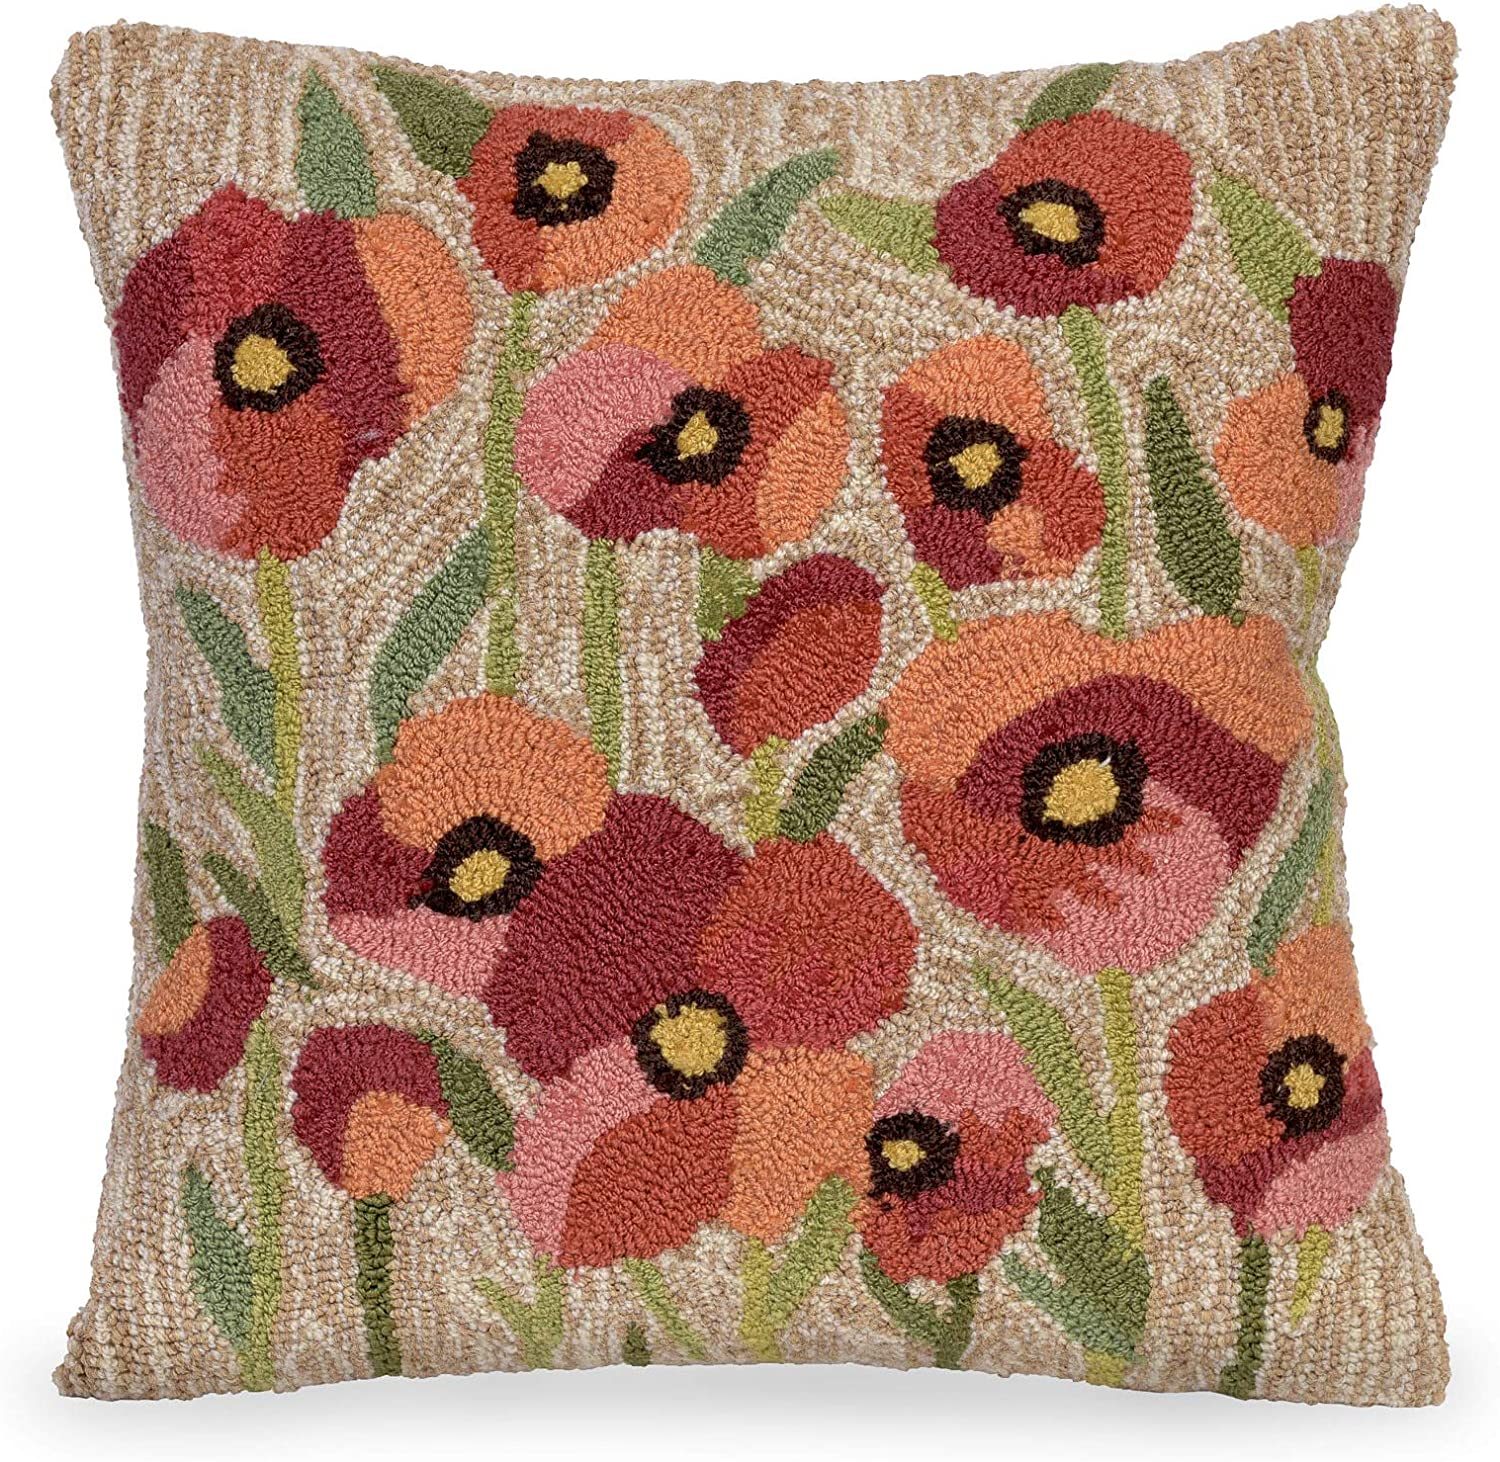 Liora Manne Whimsy Peace Floret Indoor Outdoor Pillow, 18 x 18 , Neutral